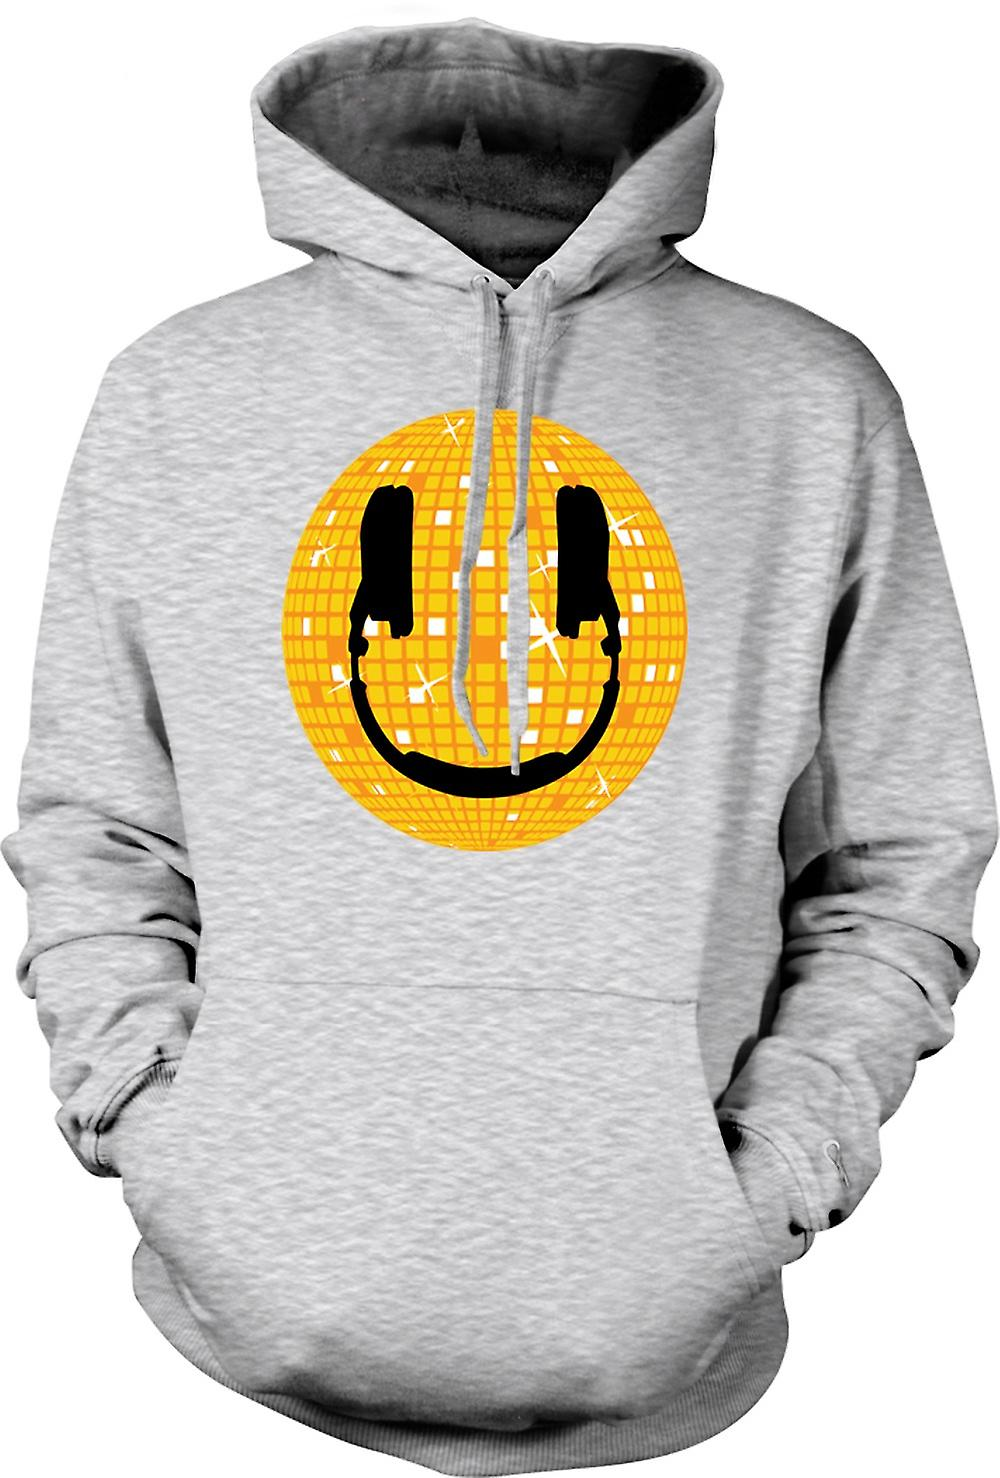 Mens-Hoodie - Smiley-Gesicht - Disco-Kugel